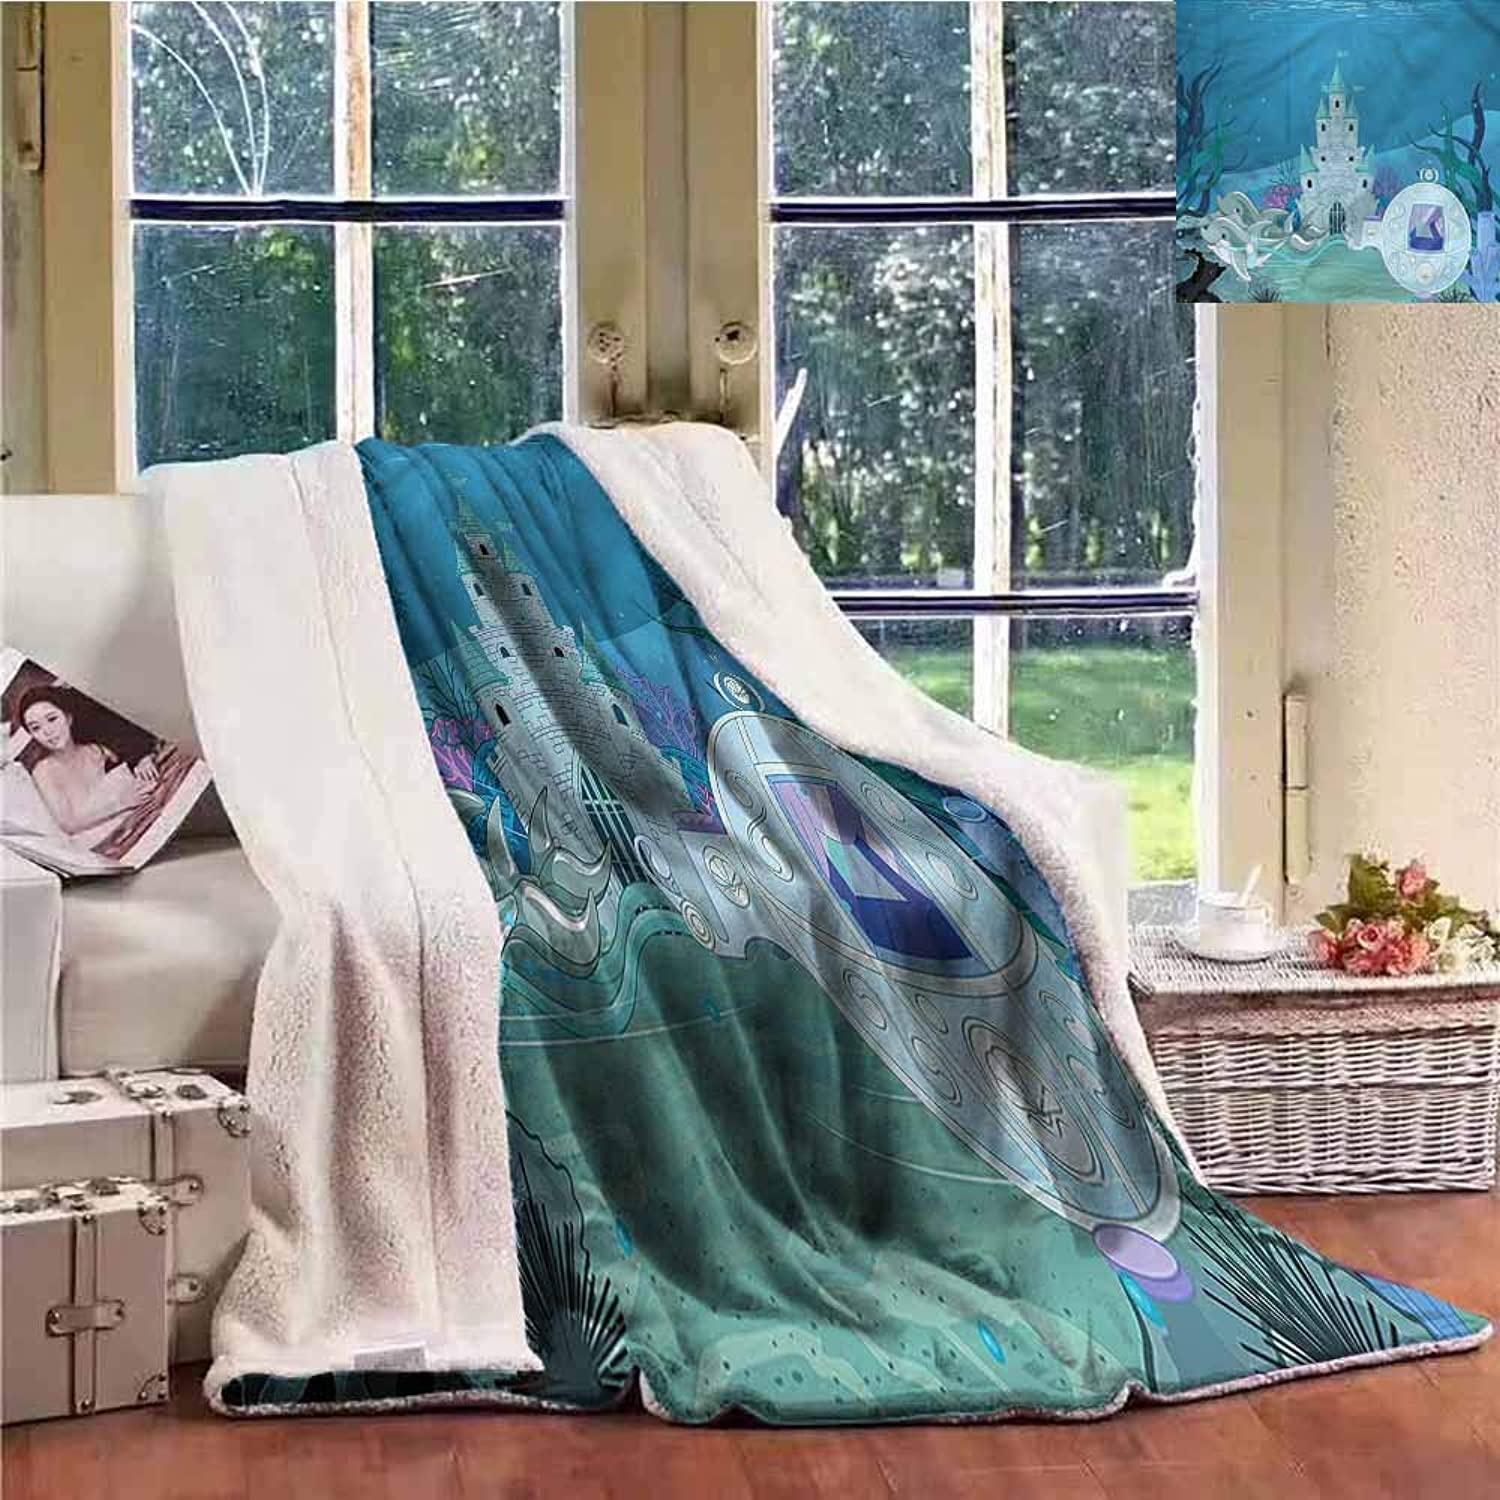 Sunnyhome Baby Blanket Ocean Fairytale Mermaid Castle Blanket for Family and Friends W59x31L